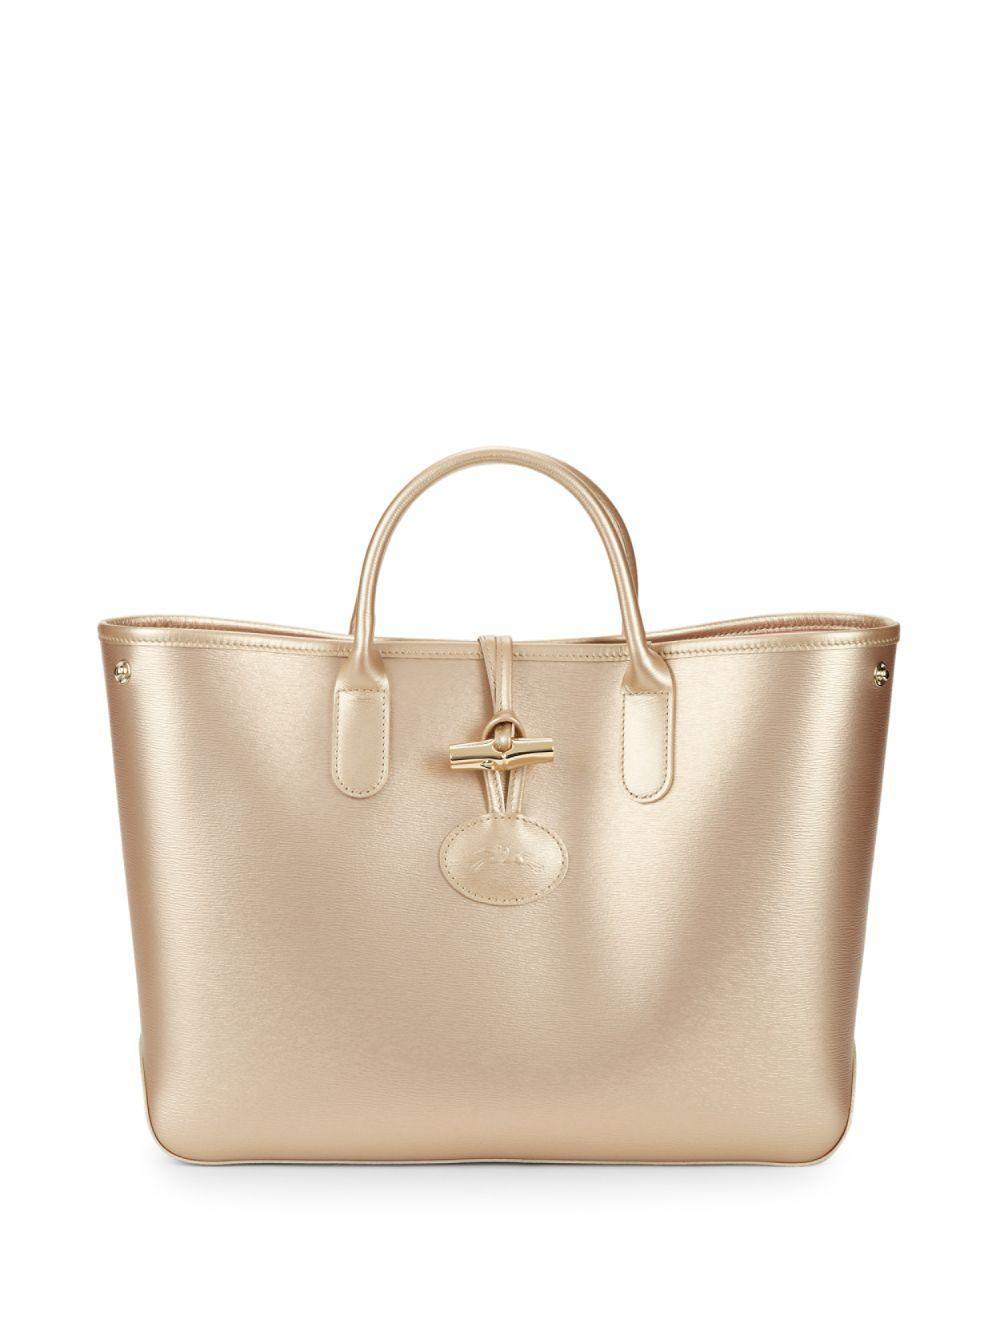 Lyst - Longchamp Small Roseau Leather Tote 6c3a31a785490